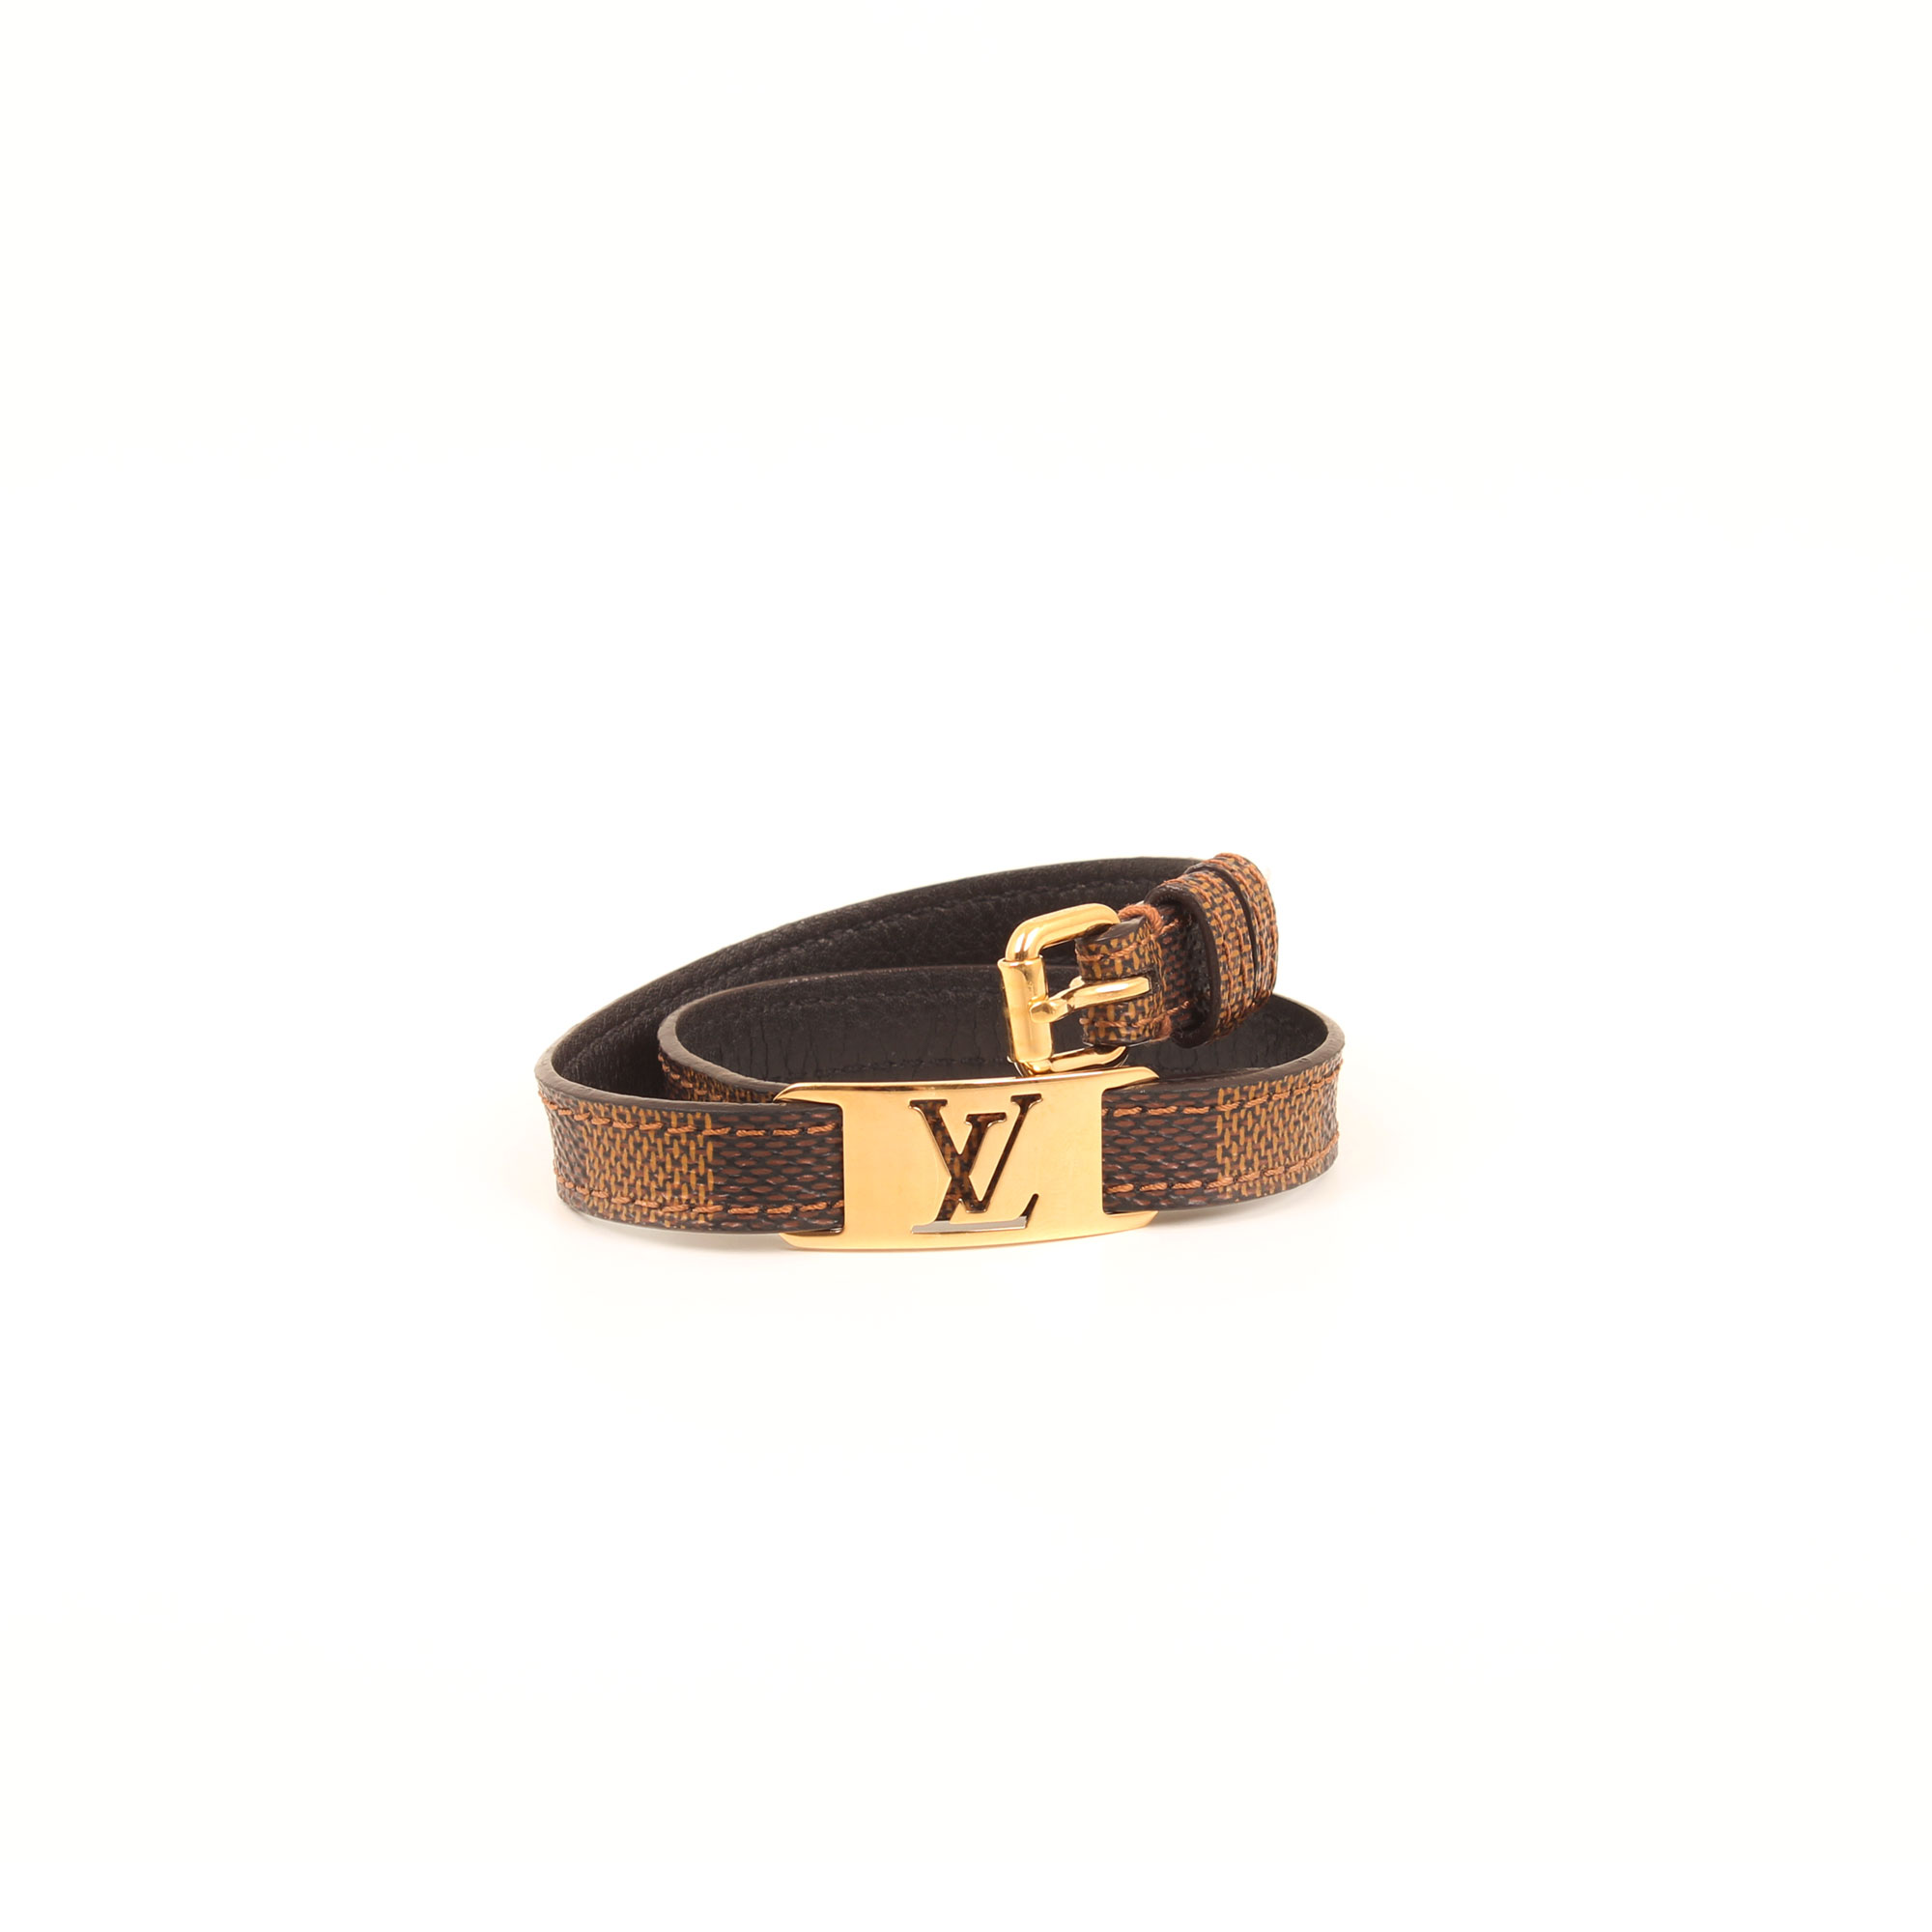 Imagen completa de la pulsera louis vuitton sign it damier